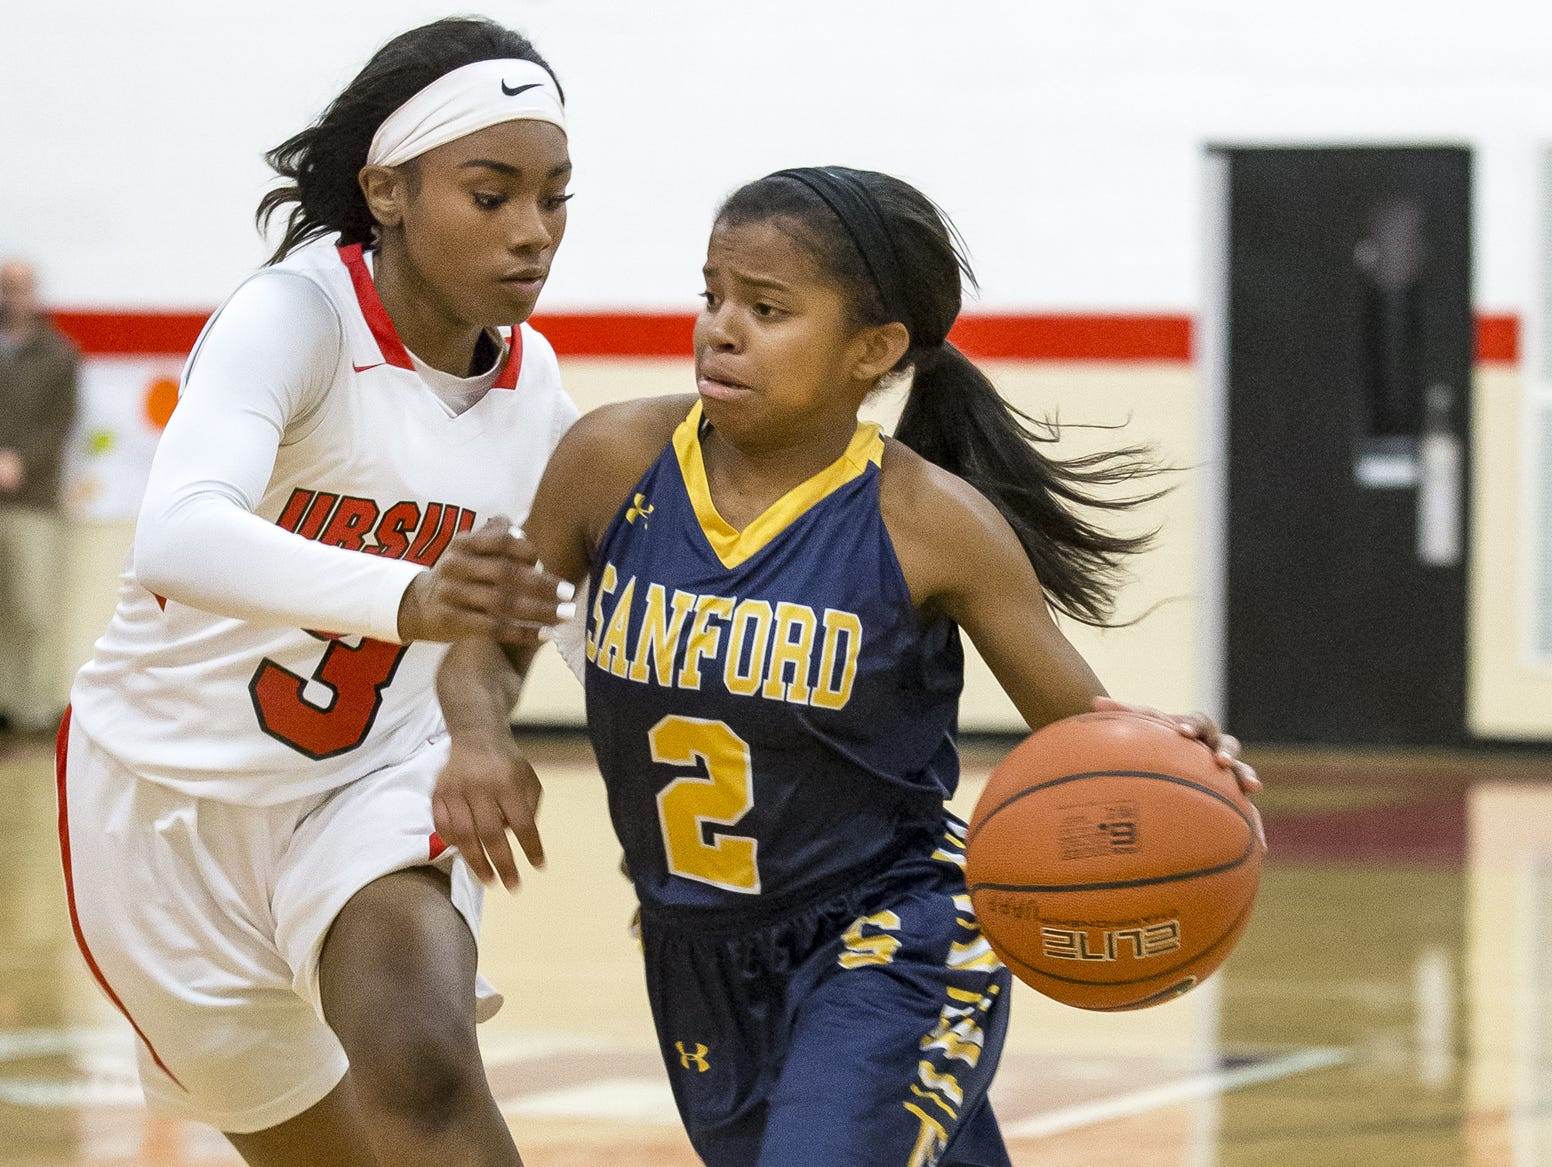 Sanford's Lauren Park (right) drives against Ursuline's Yanni Hendley-McCalla during Ursuline's 50-40 win on Feb. 16.